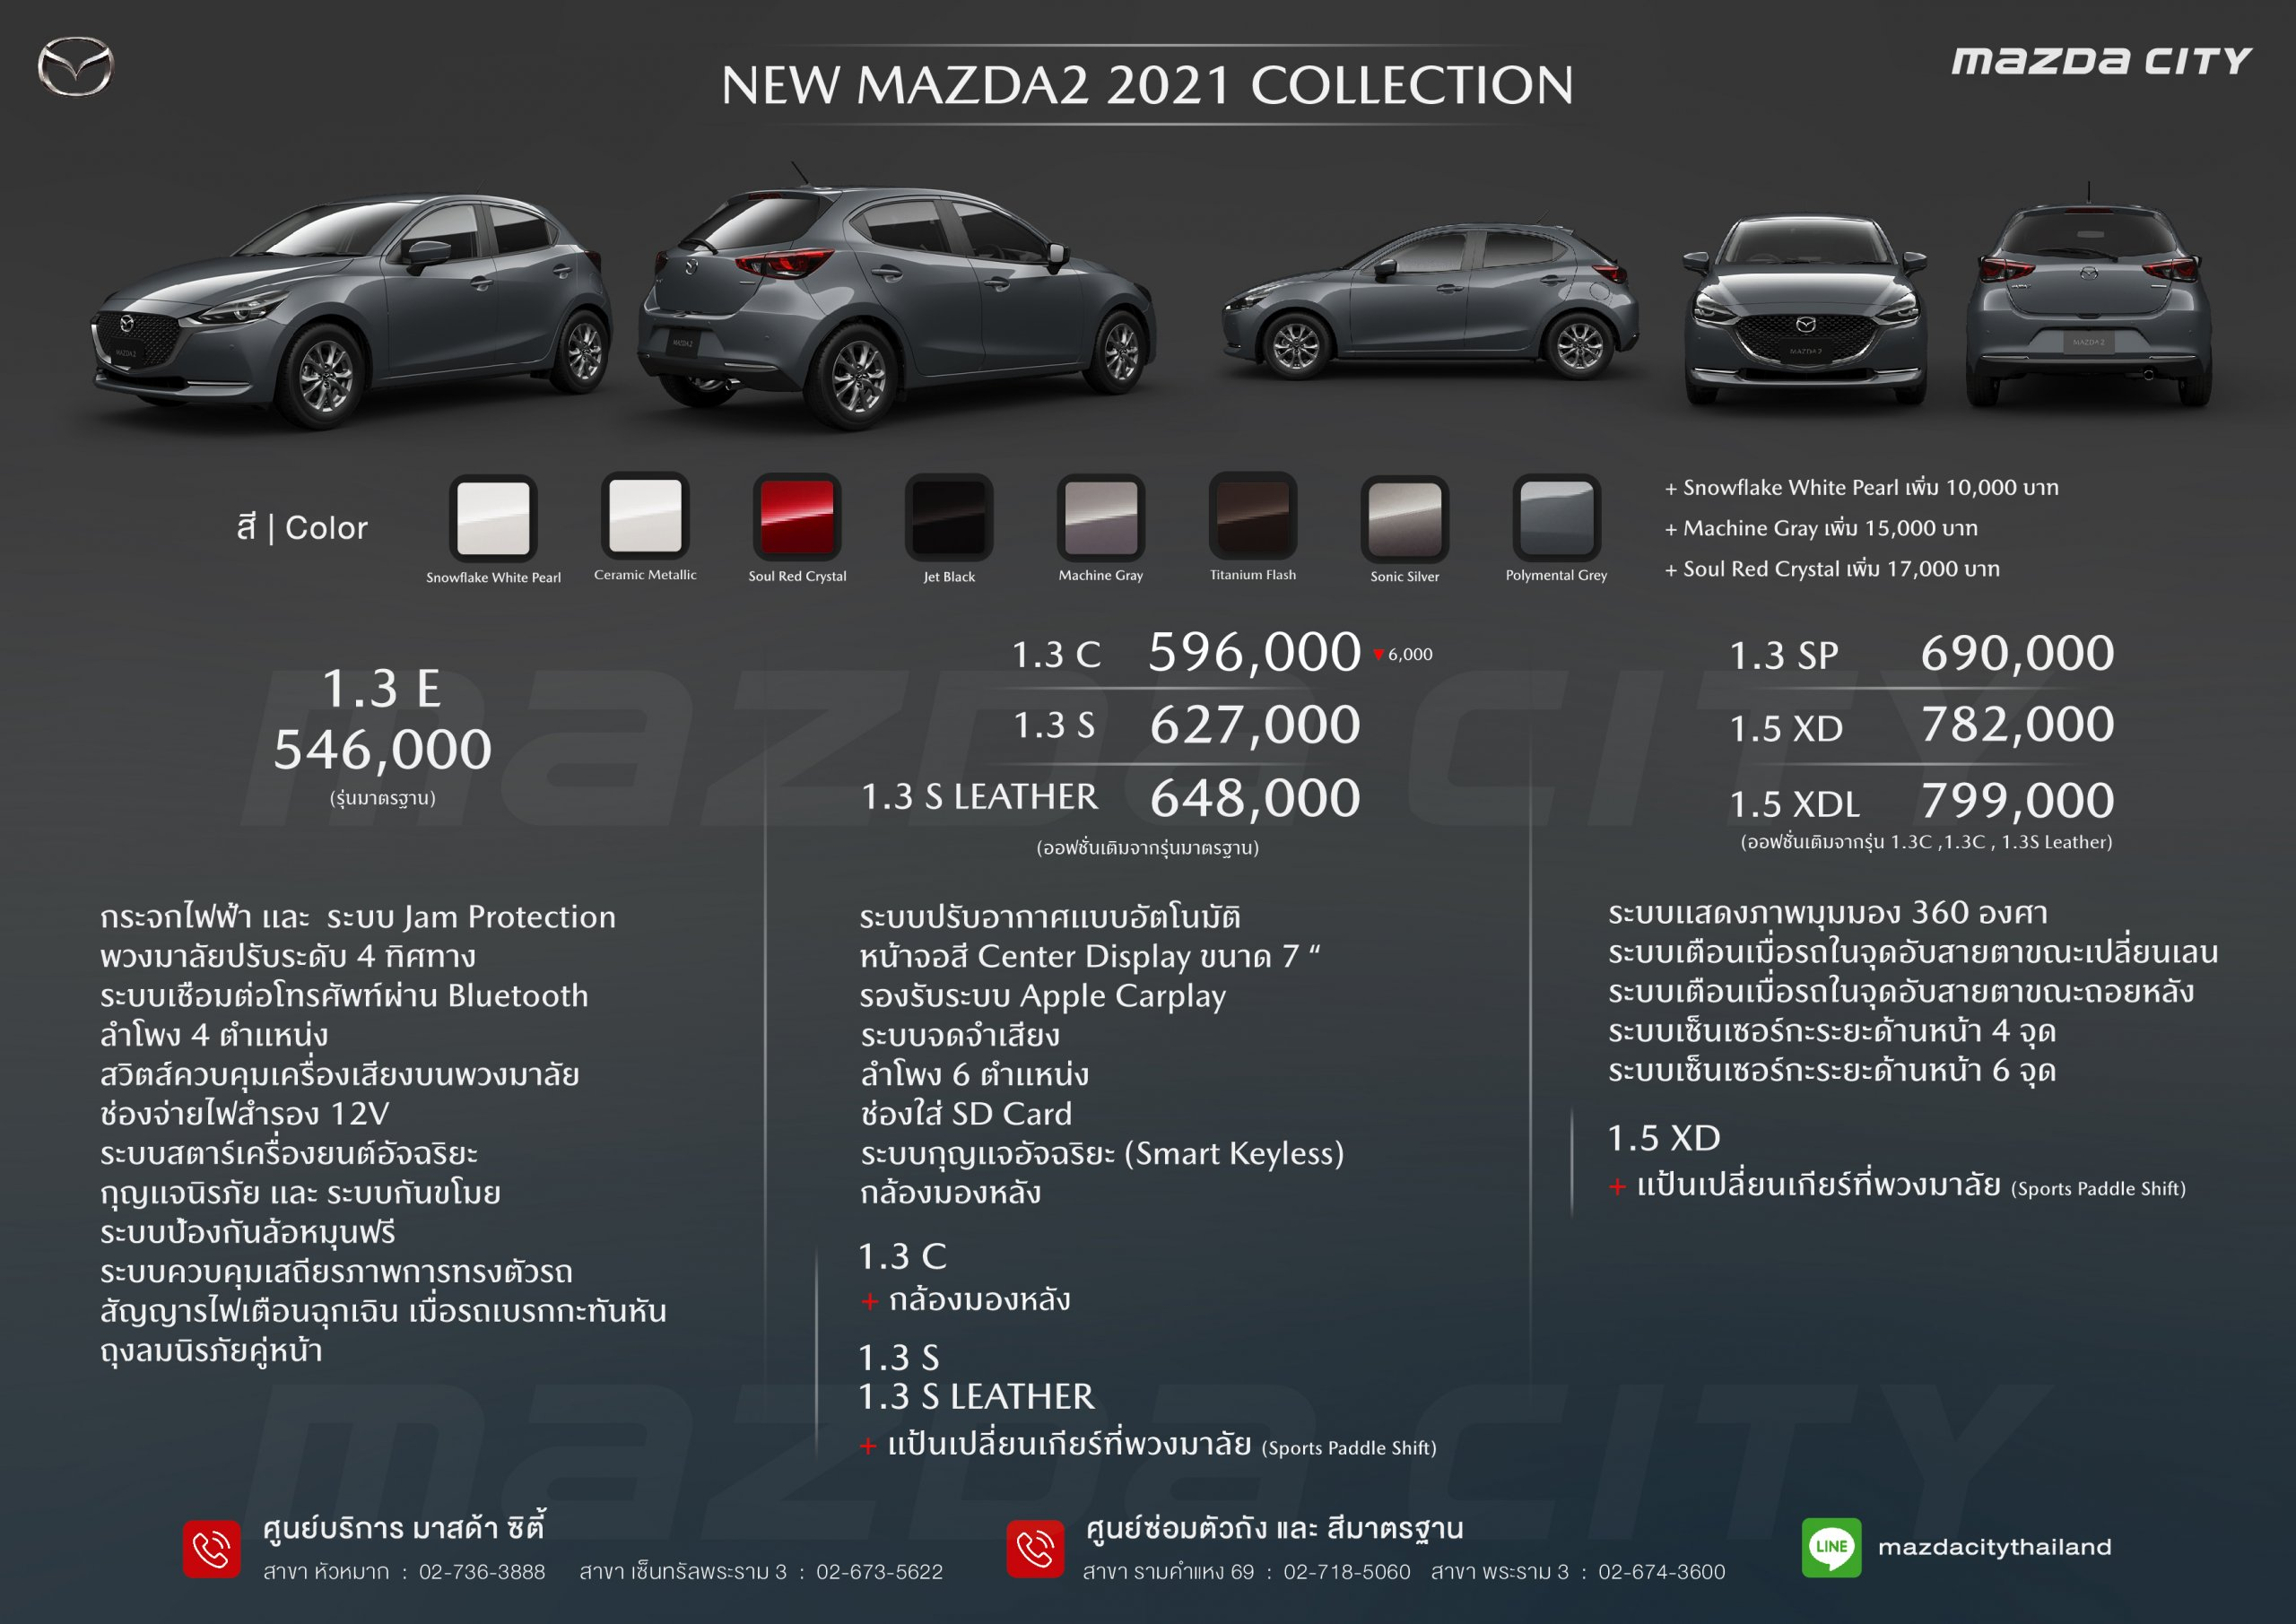 Spectification - New Mazda2 (2021Collection)-01